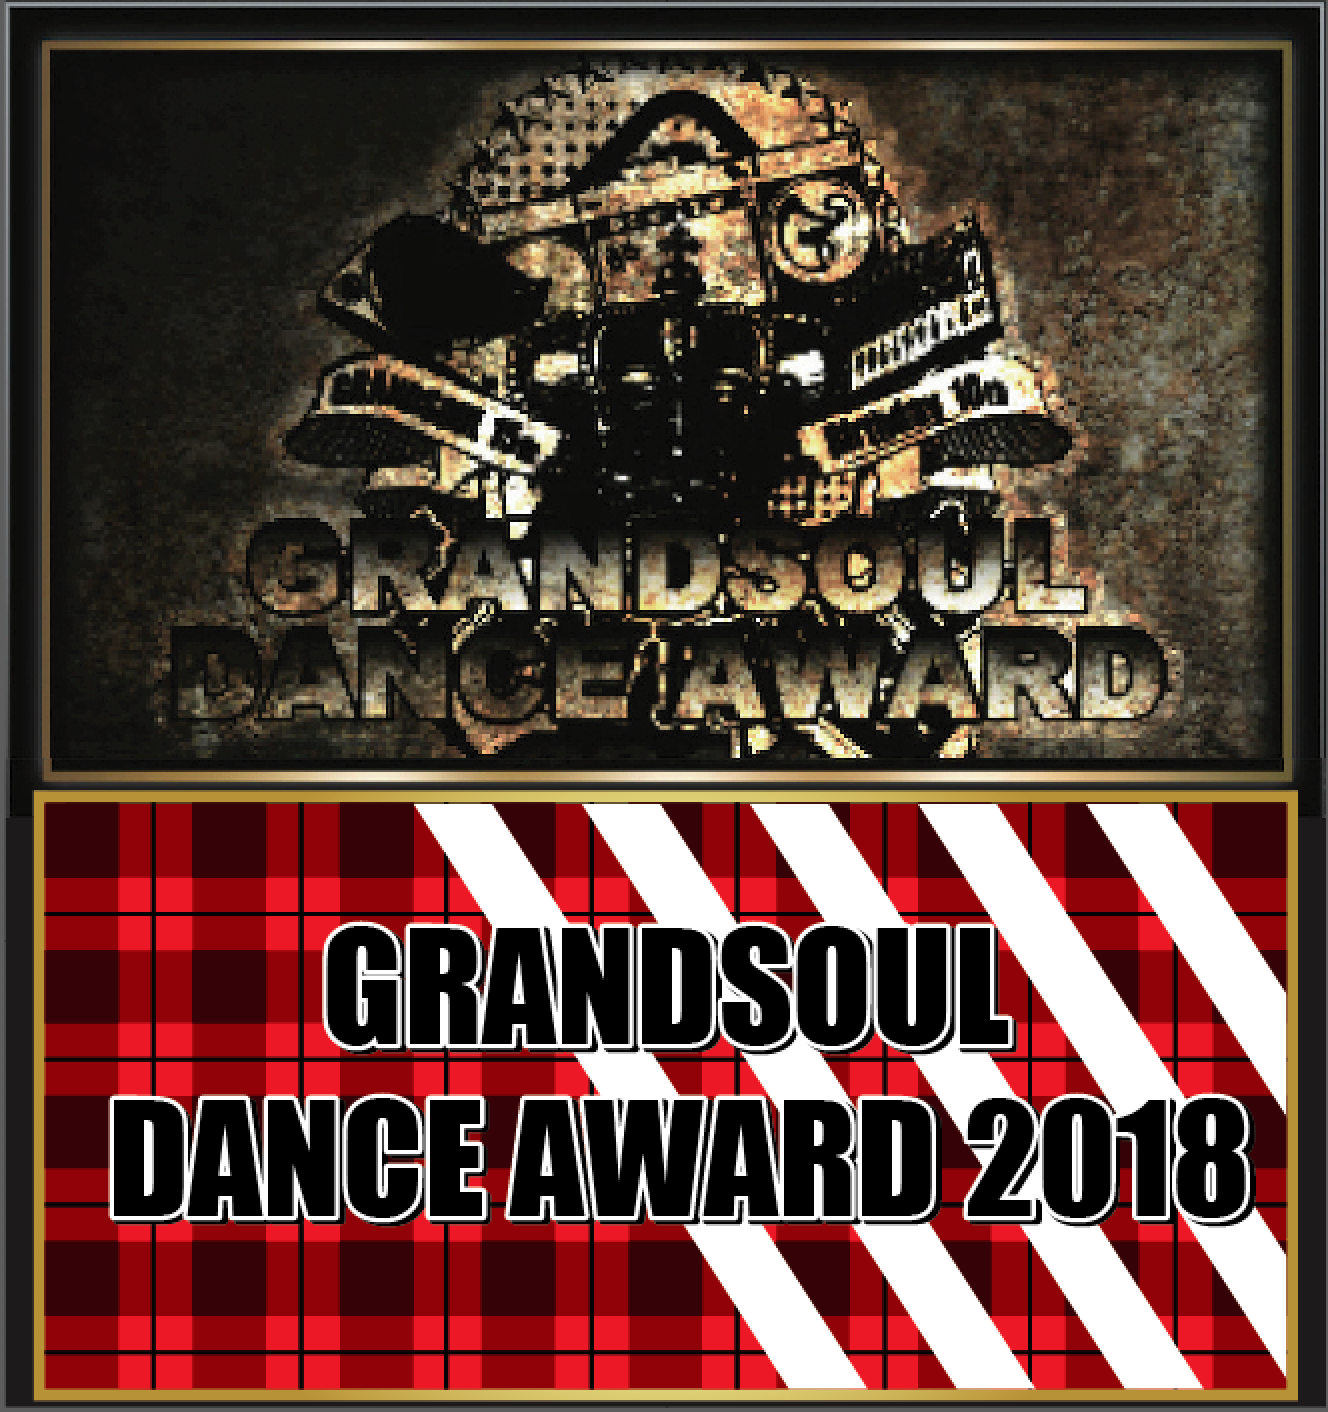 GRANDSOUL DANCE AWARD 2017